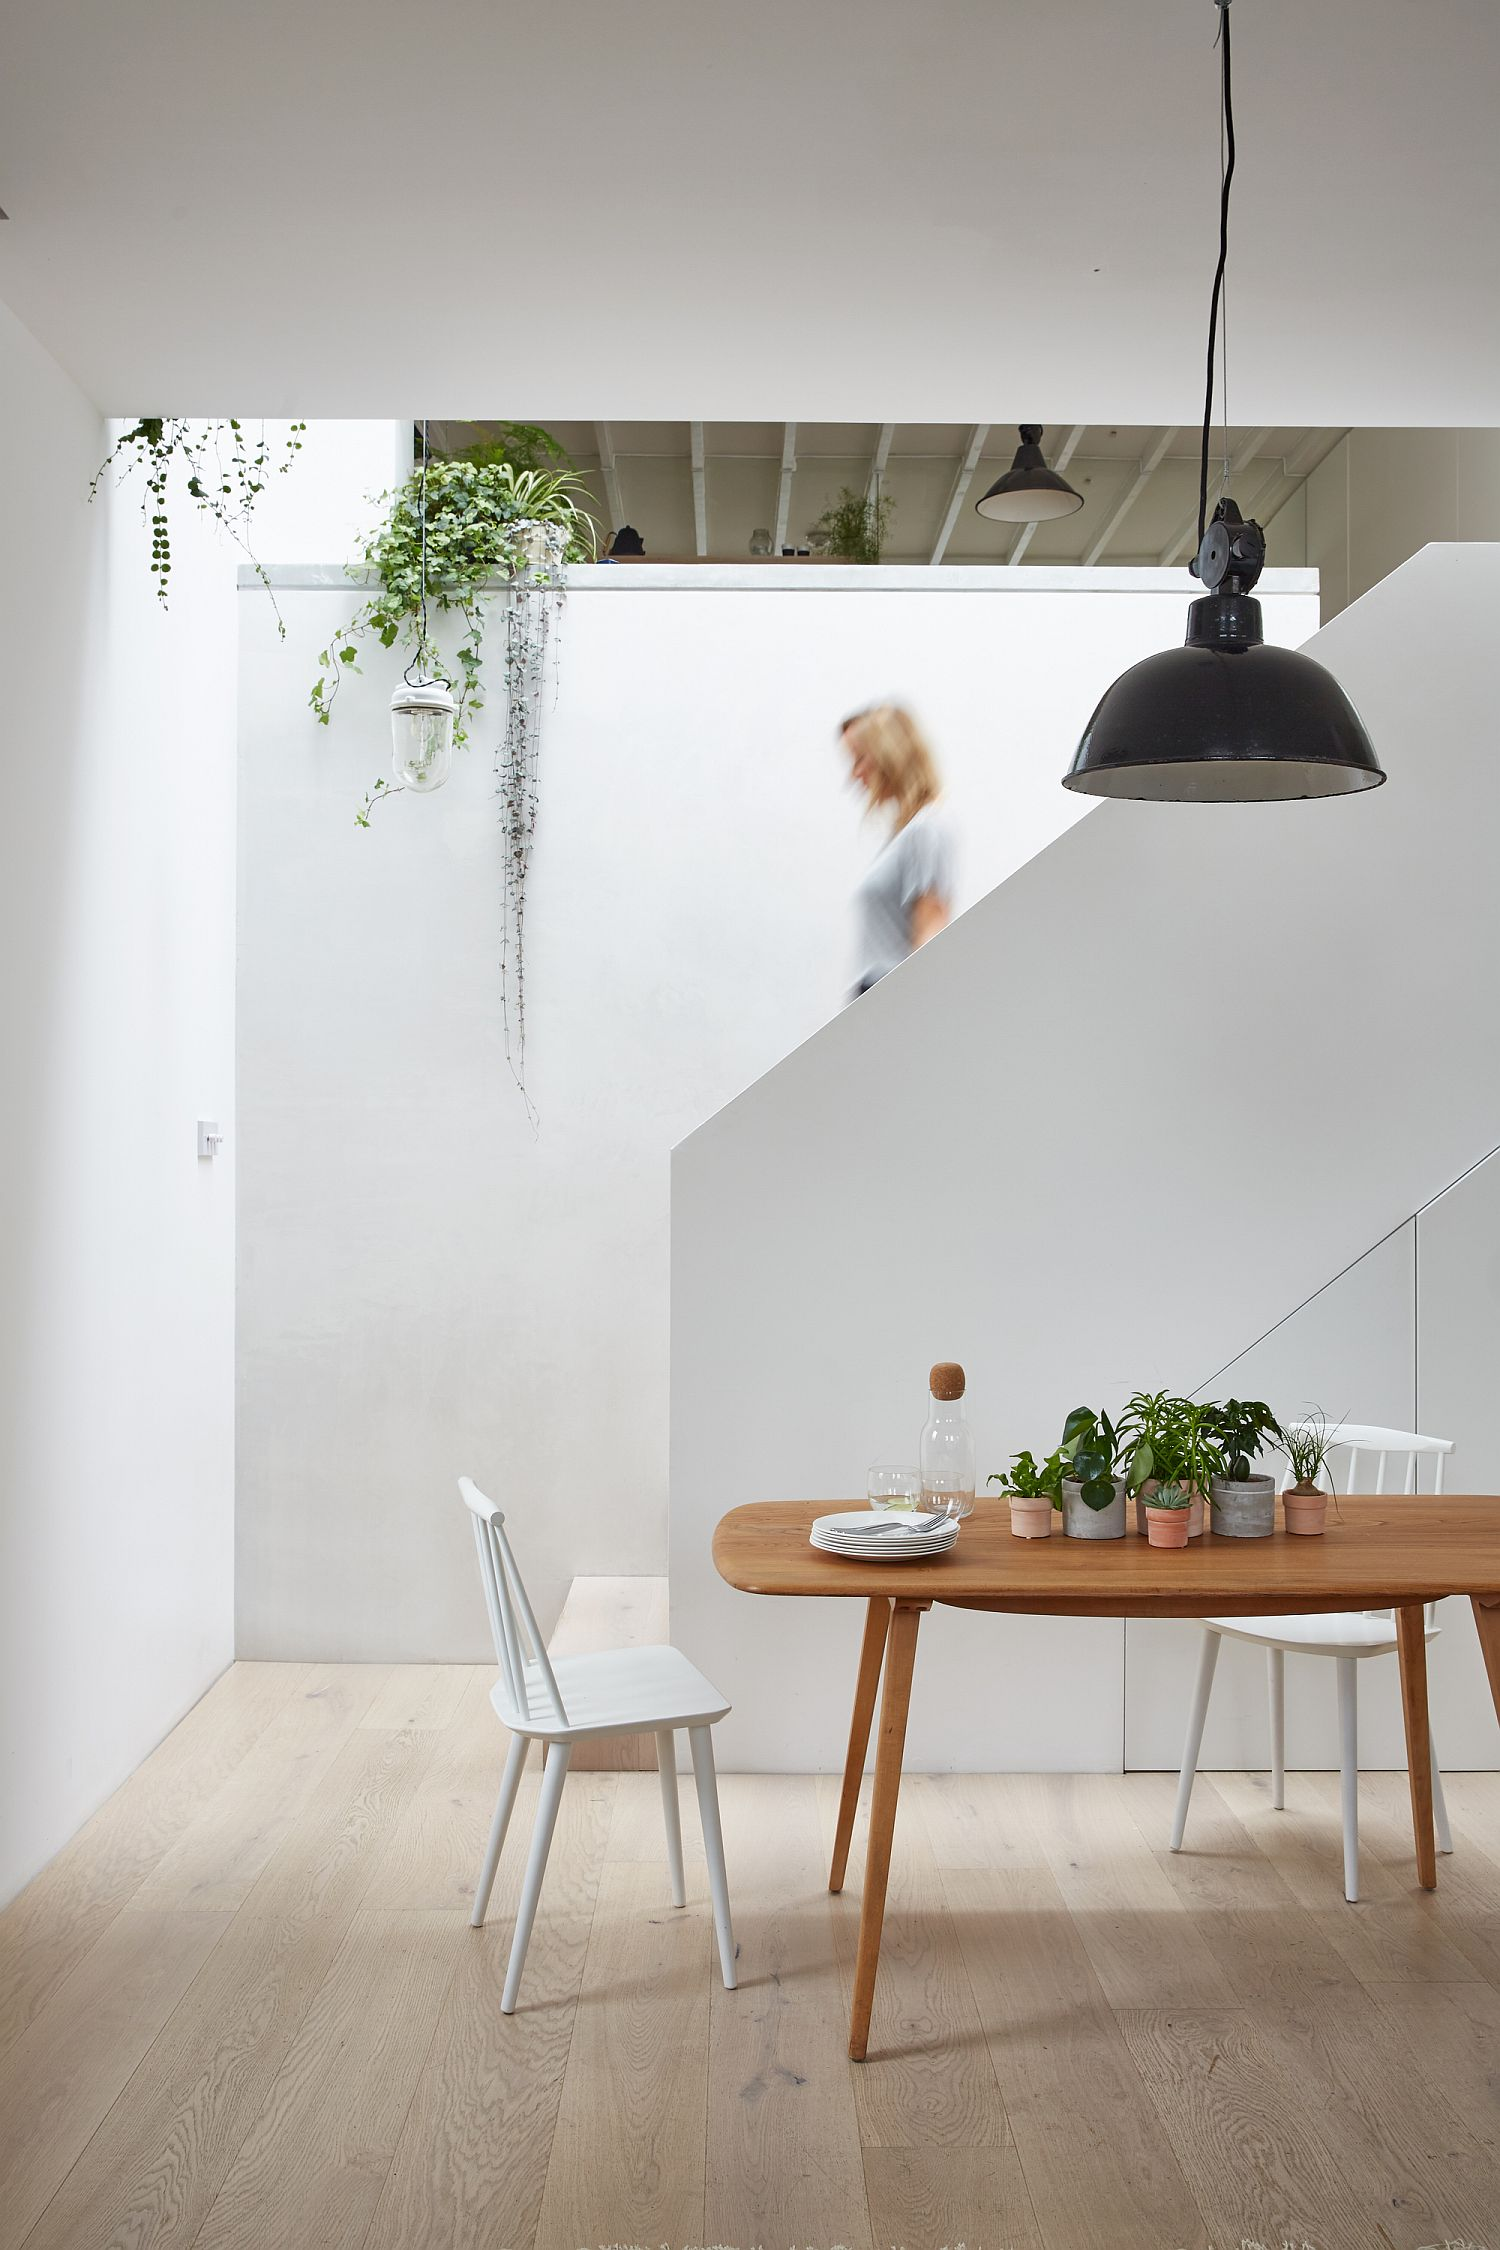 This Two Level Brick Home in London Gets a Cheerful, Modern Upgrade